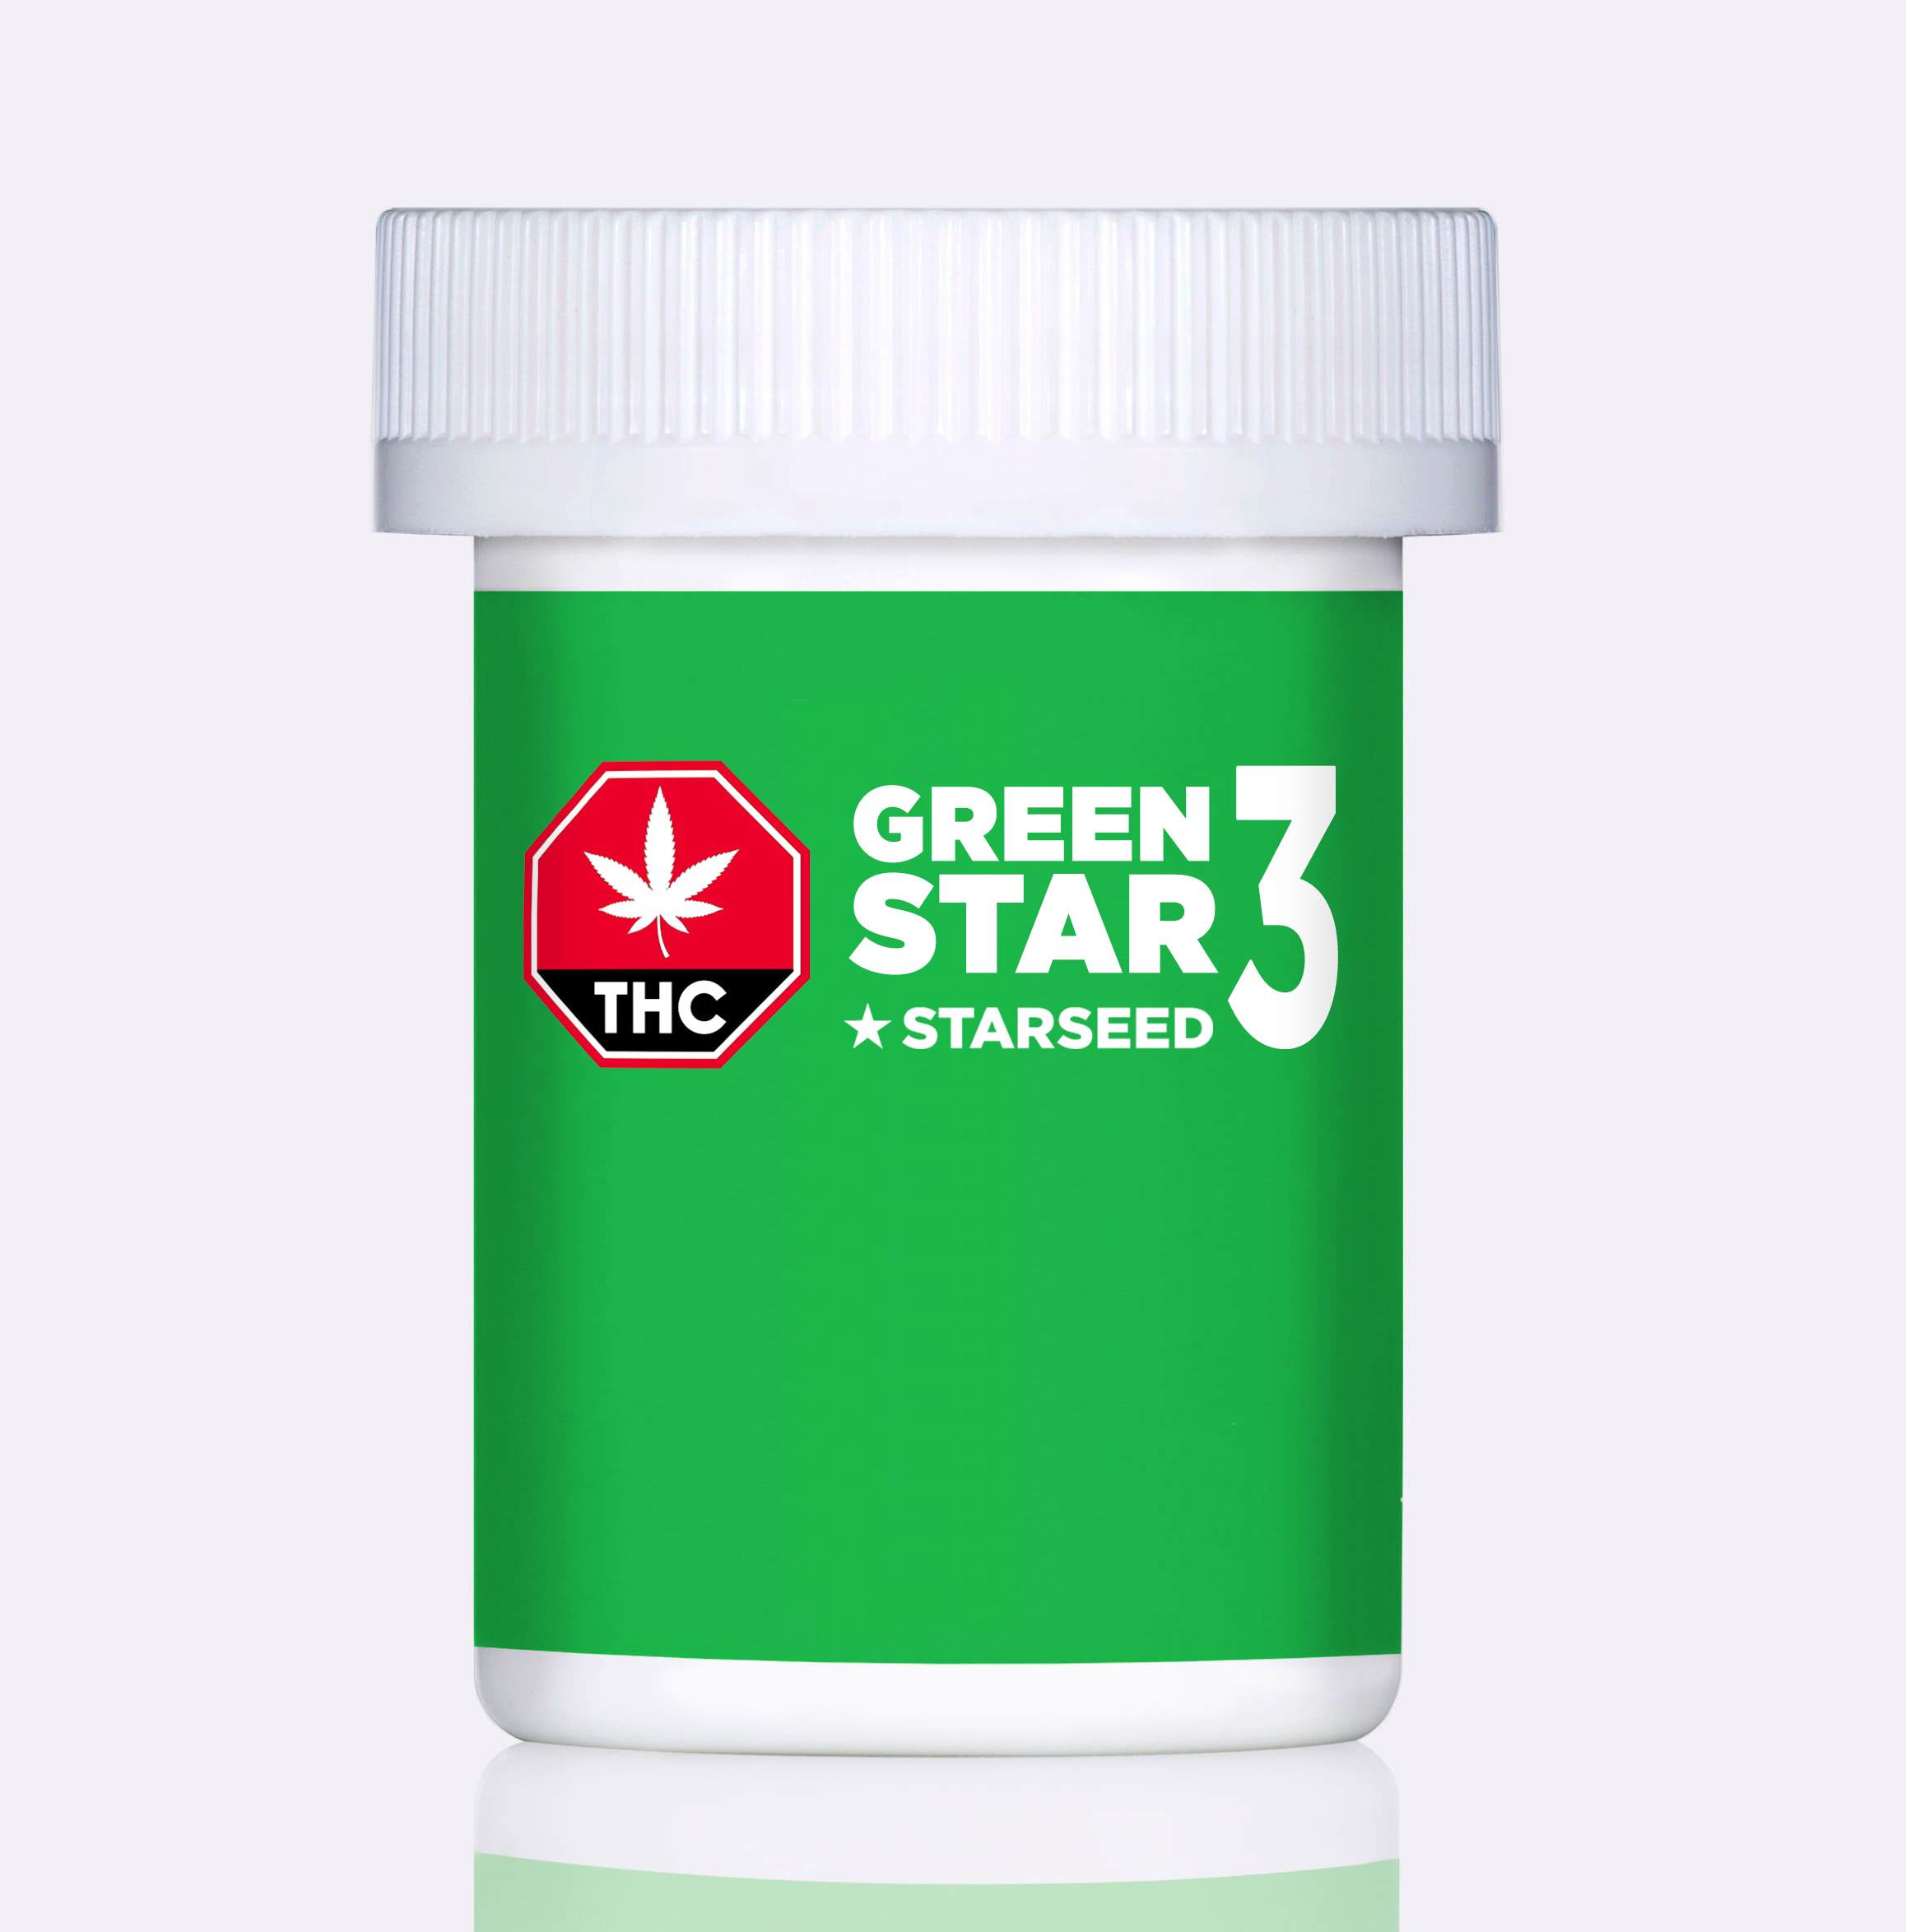 Starseed Green Star 3 - 5g